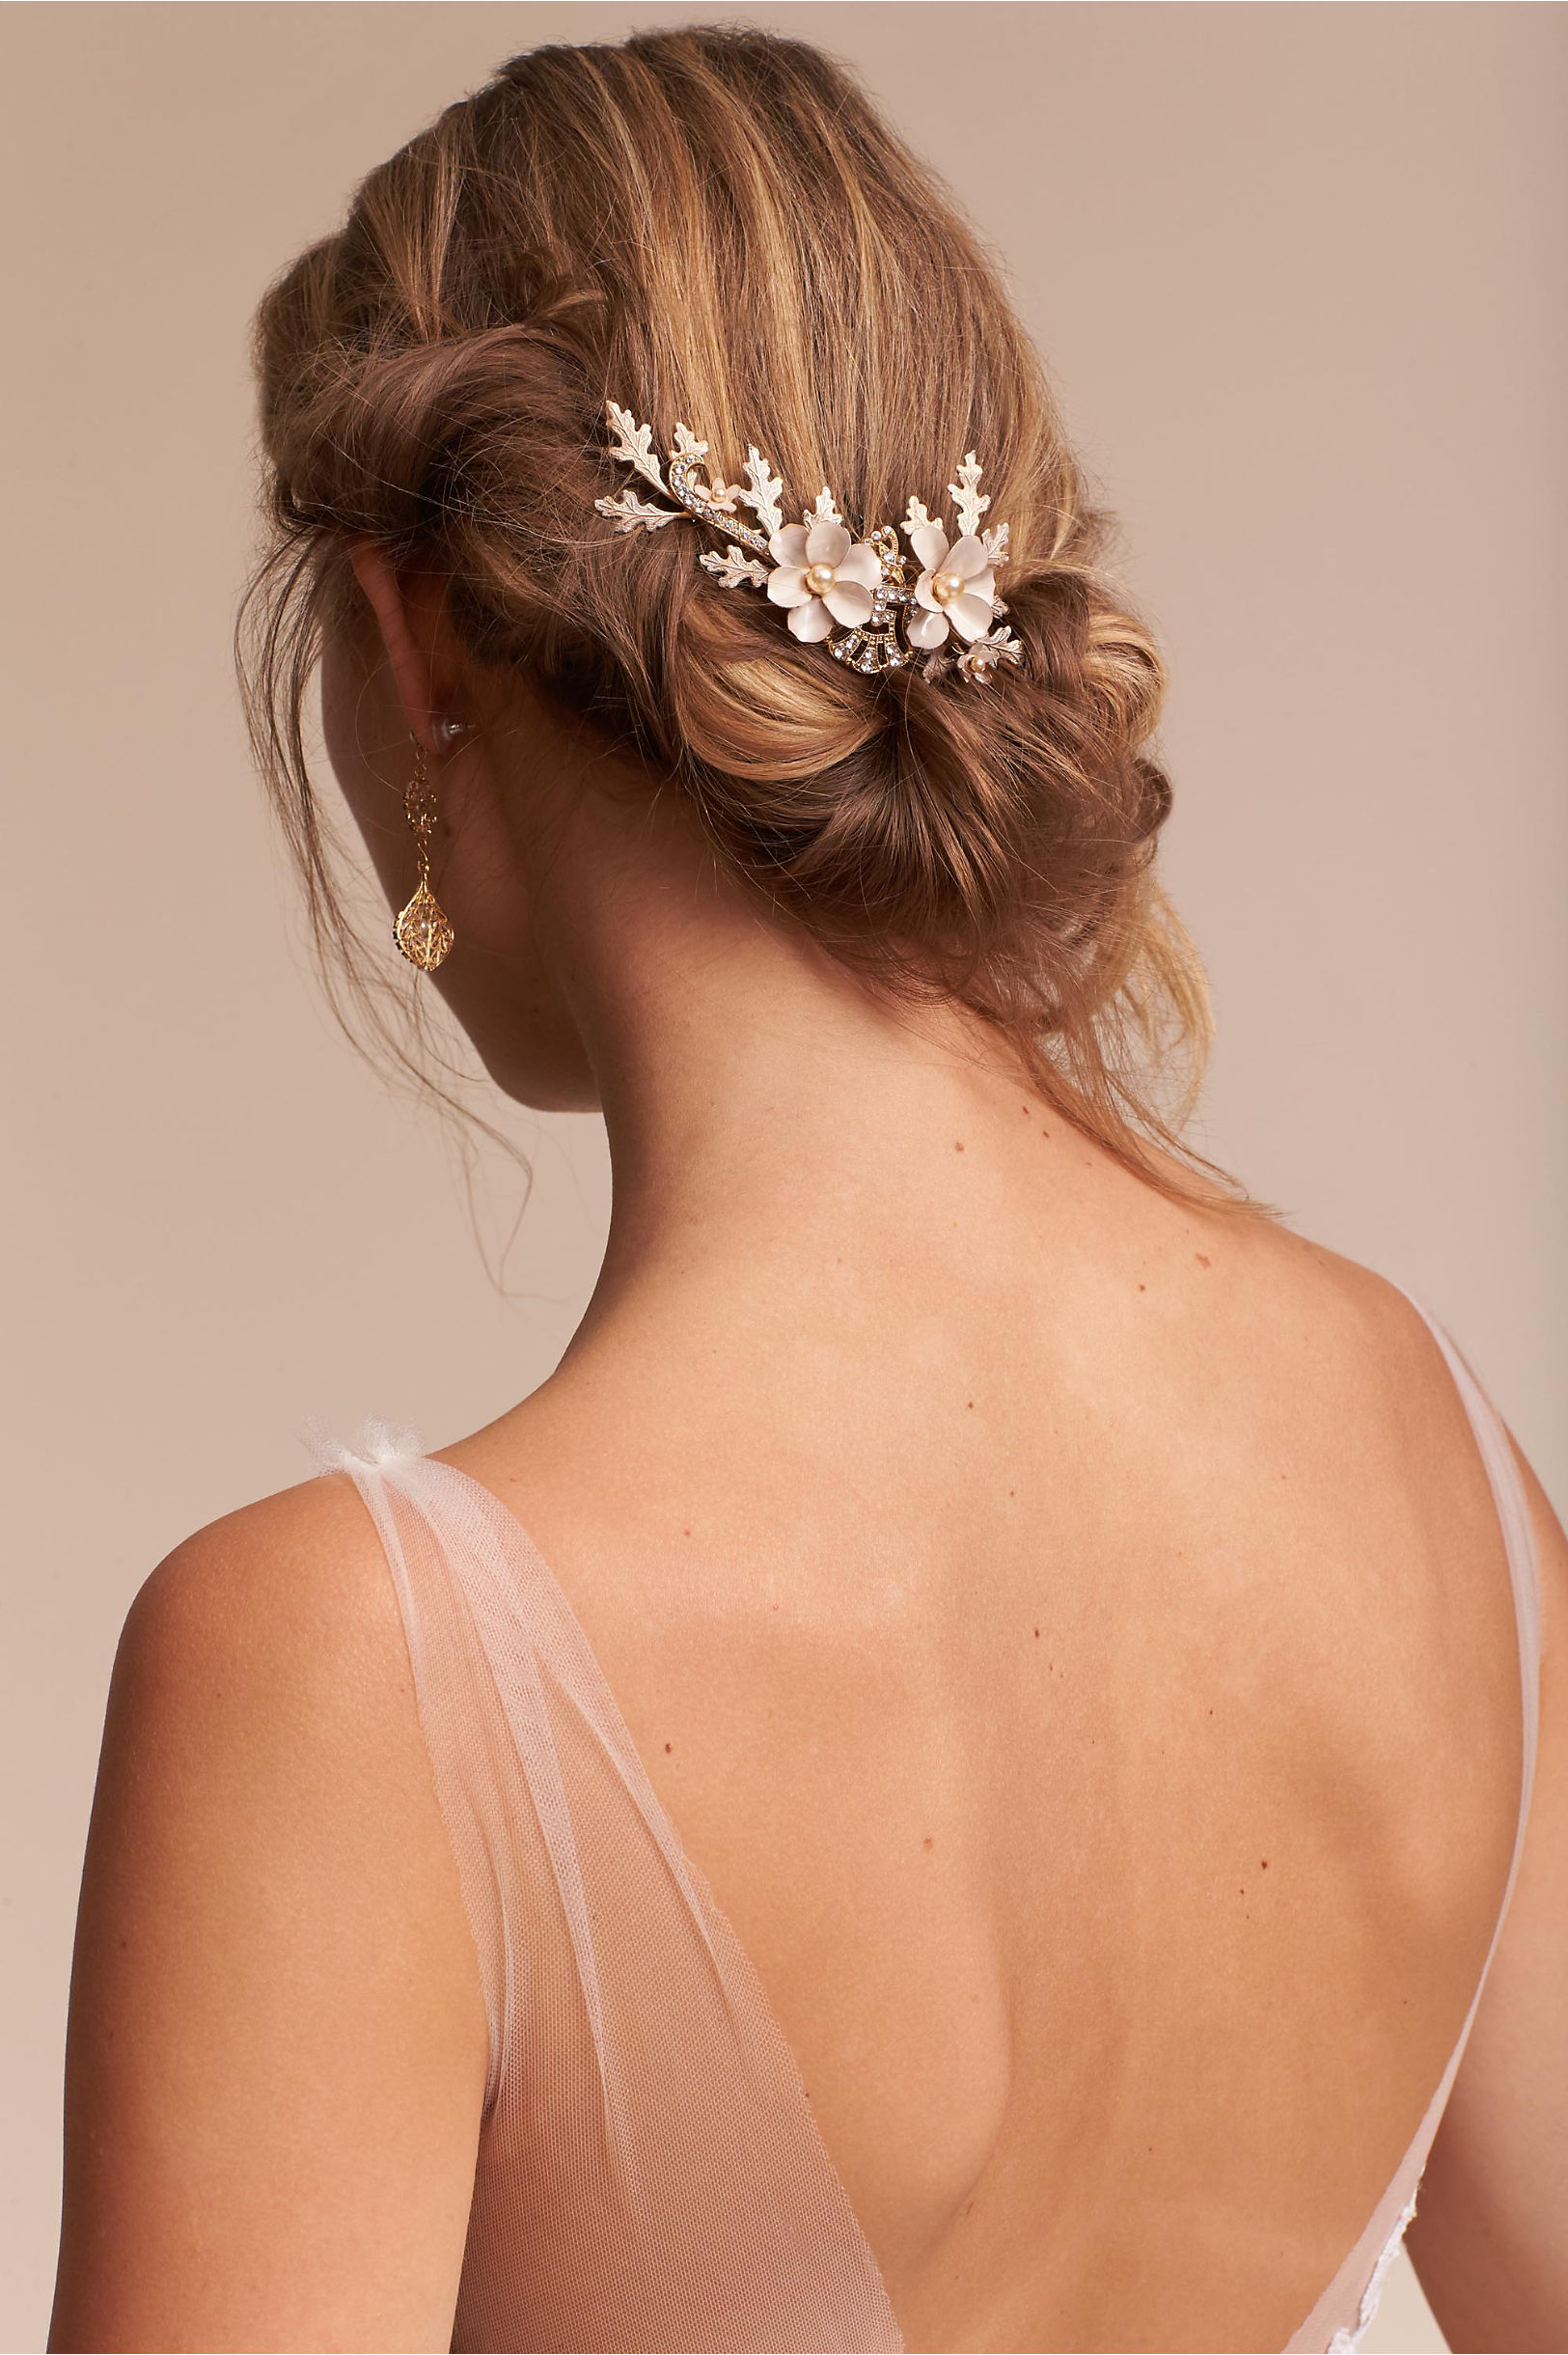 bridal hair combs, hair pins & hair clips | bhldn